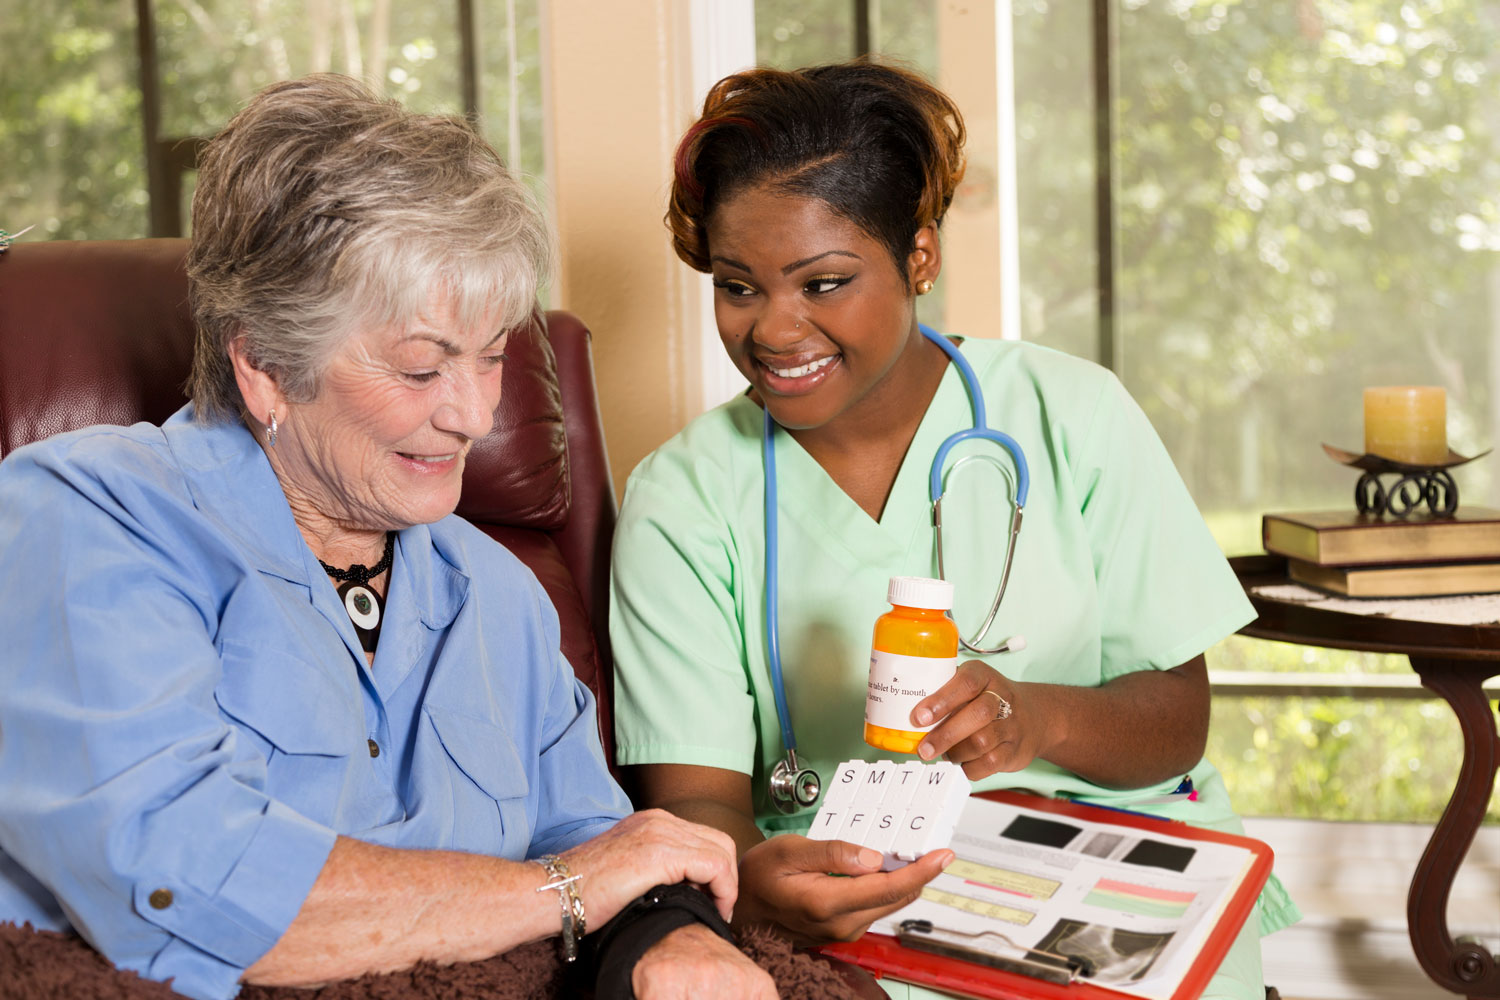 Being able to remember to take your medication every day at a certain time can be a difficult for many people, especially if one must take multiple medications at different times a day. Furthermore, if your loved one has Alzheimer's or dementia, remembering to take medication becomes more of a strenuous effort.